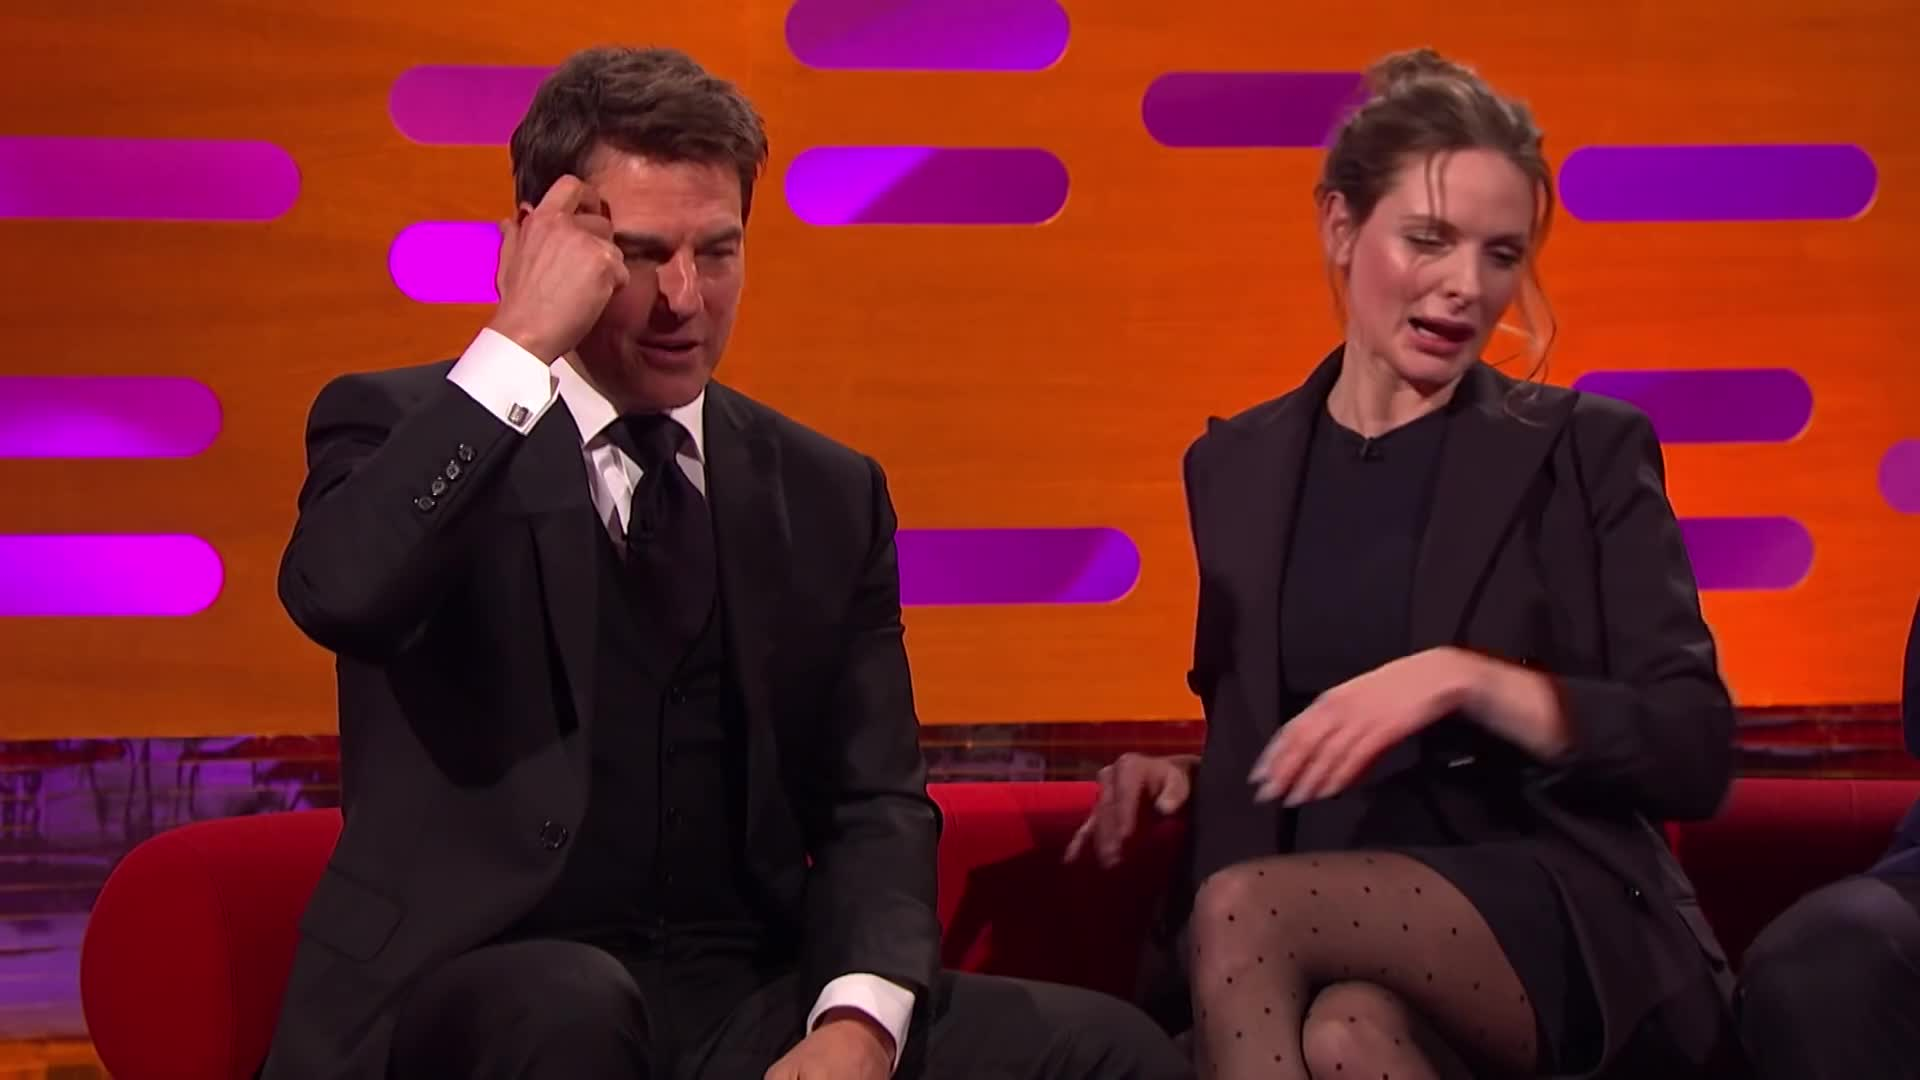 The Graham Norton Show 2018, celebs, henry cavill, rebecca ferguson, simon pegg, the graham norton show 2018, tom cruise, Tom Cruise Reacts to Slow-Mo Footage of How He Broke His Ankle | The Graham Norton Show GIFs